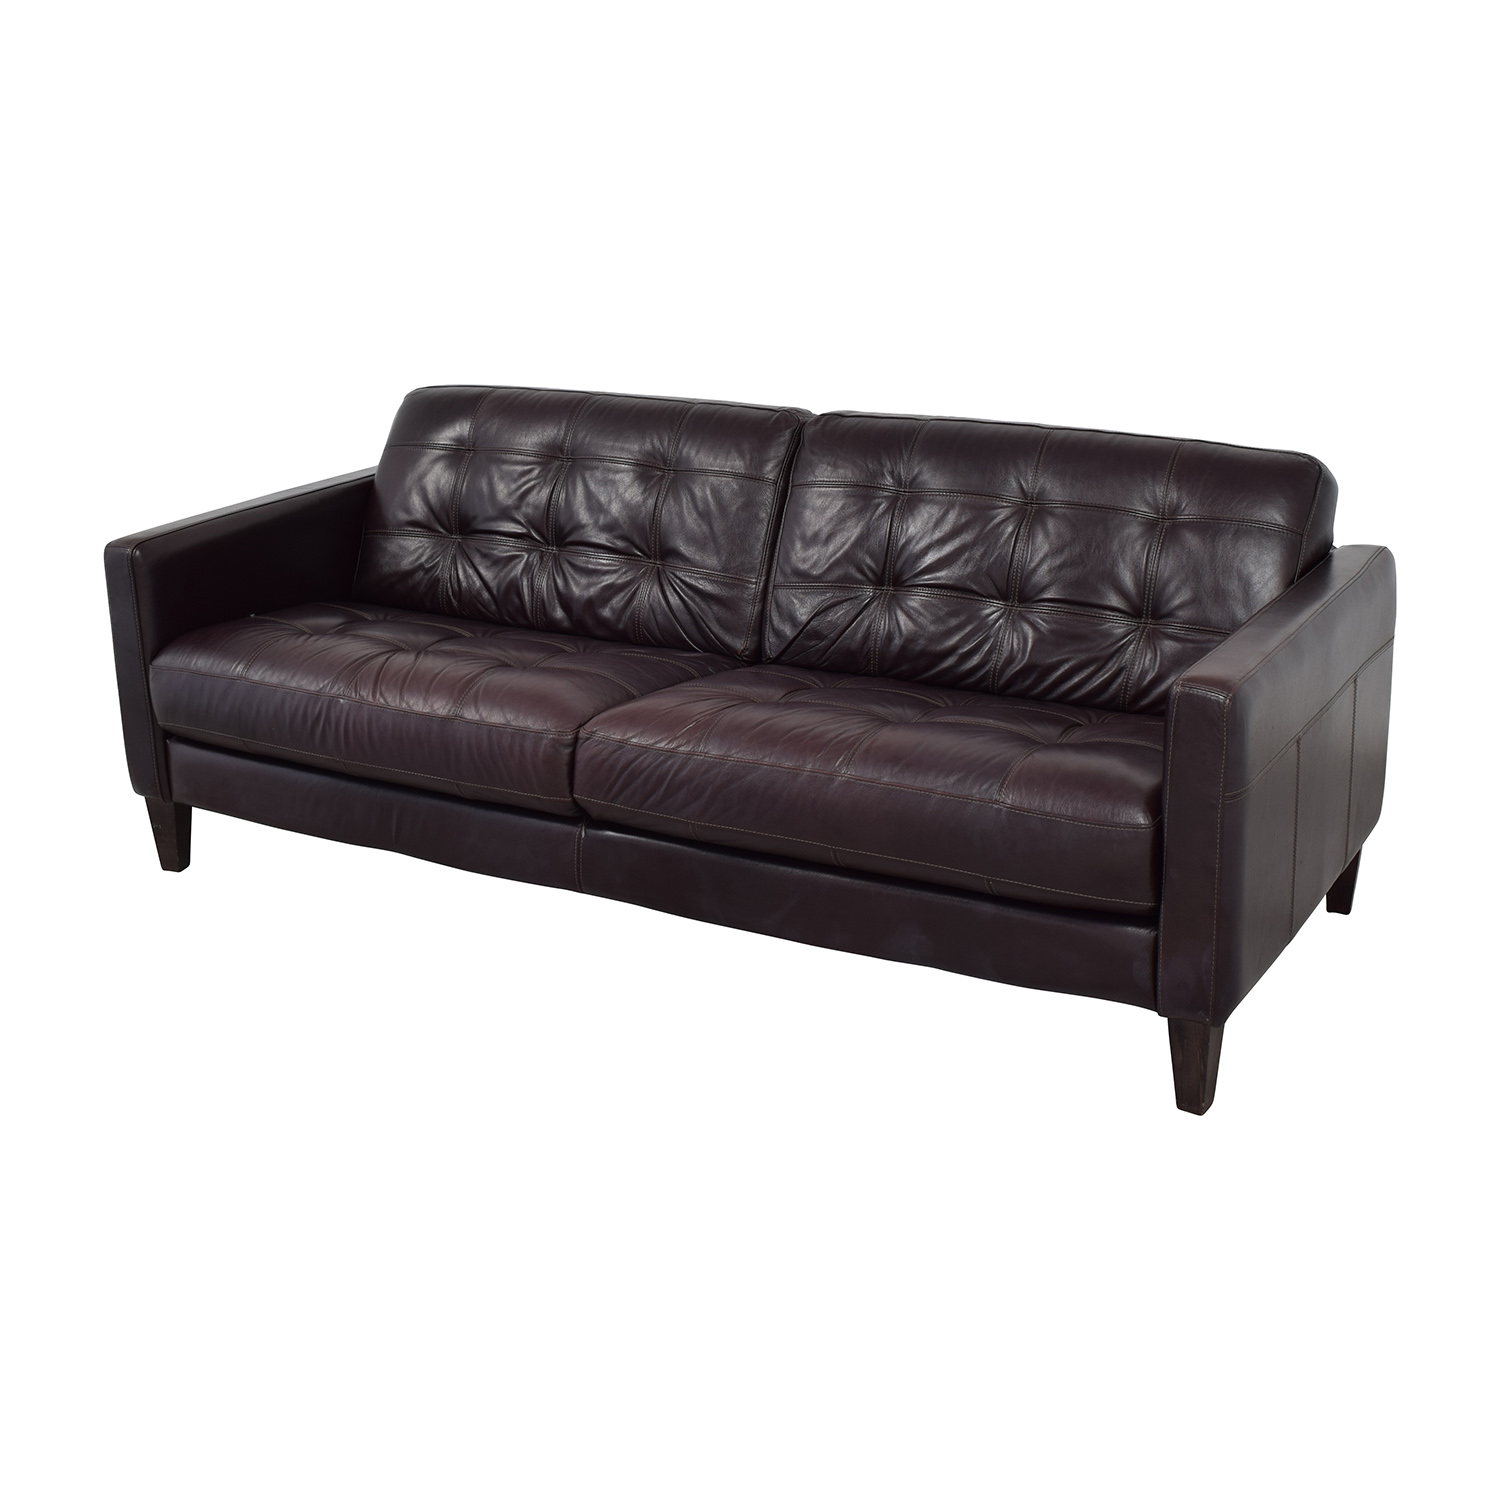 Macys Sofa: Macy's Macy's Milan Leather Sofa / Sofas